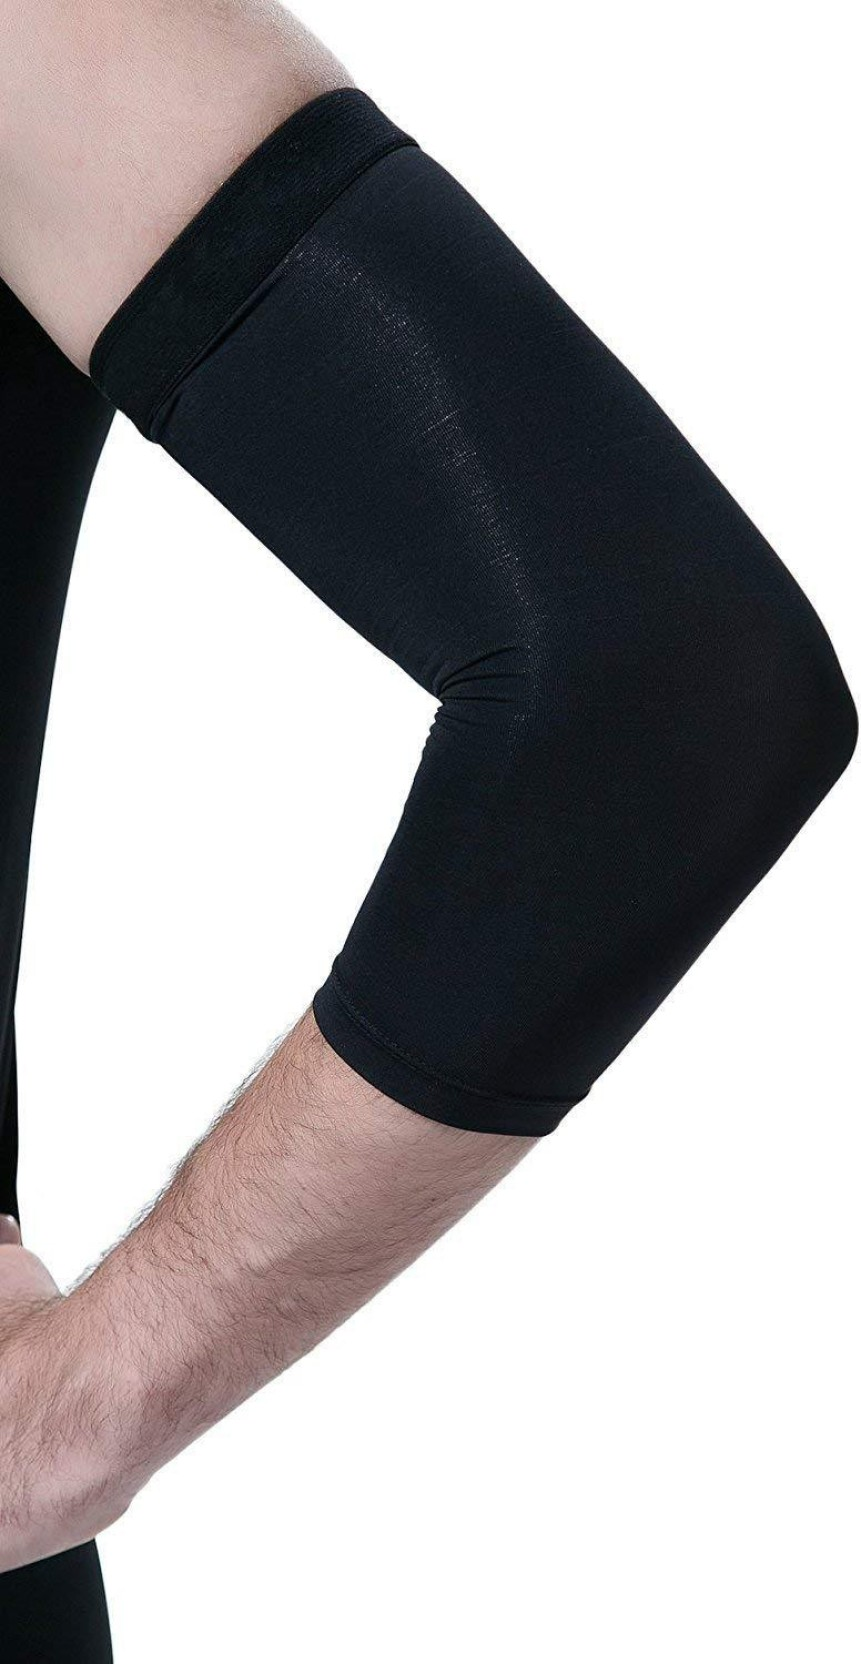 3383f1a2f0 QUINERGYS Elbow Sleeve. Brace for Weightlifting, Squash,Tennis, Basketball  and Golf. ON OFFER